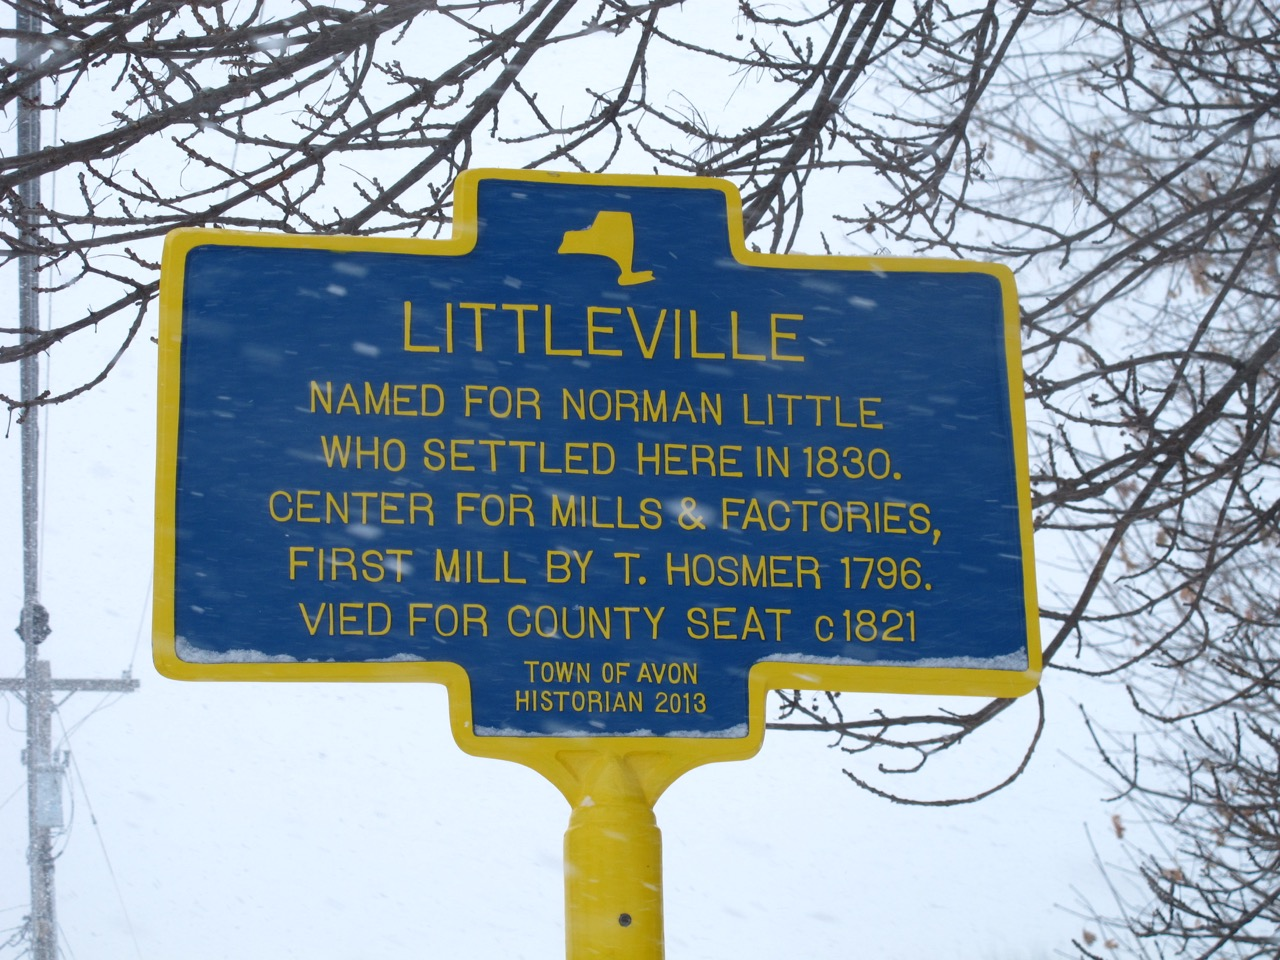 Link for   Littleville and Ashantee  history.